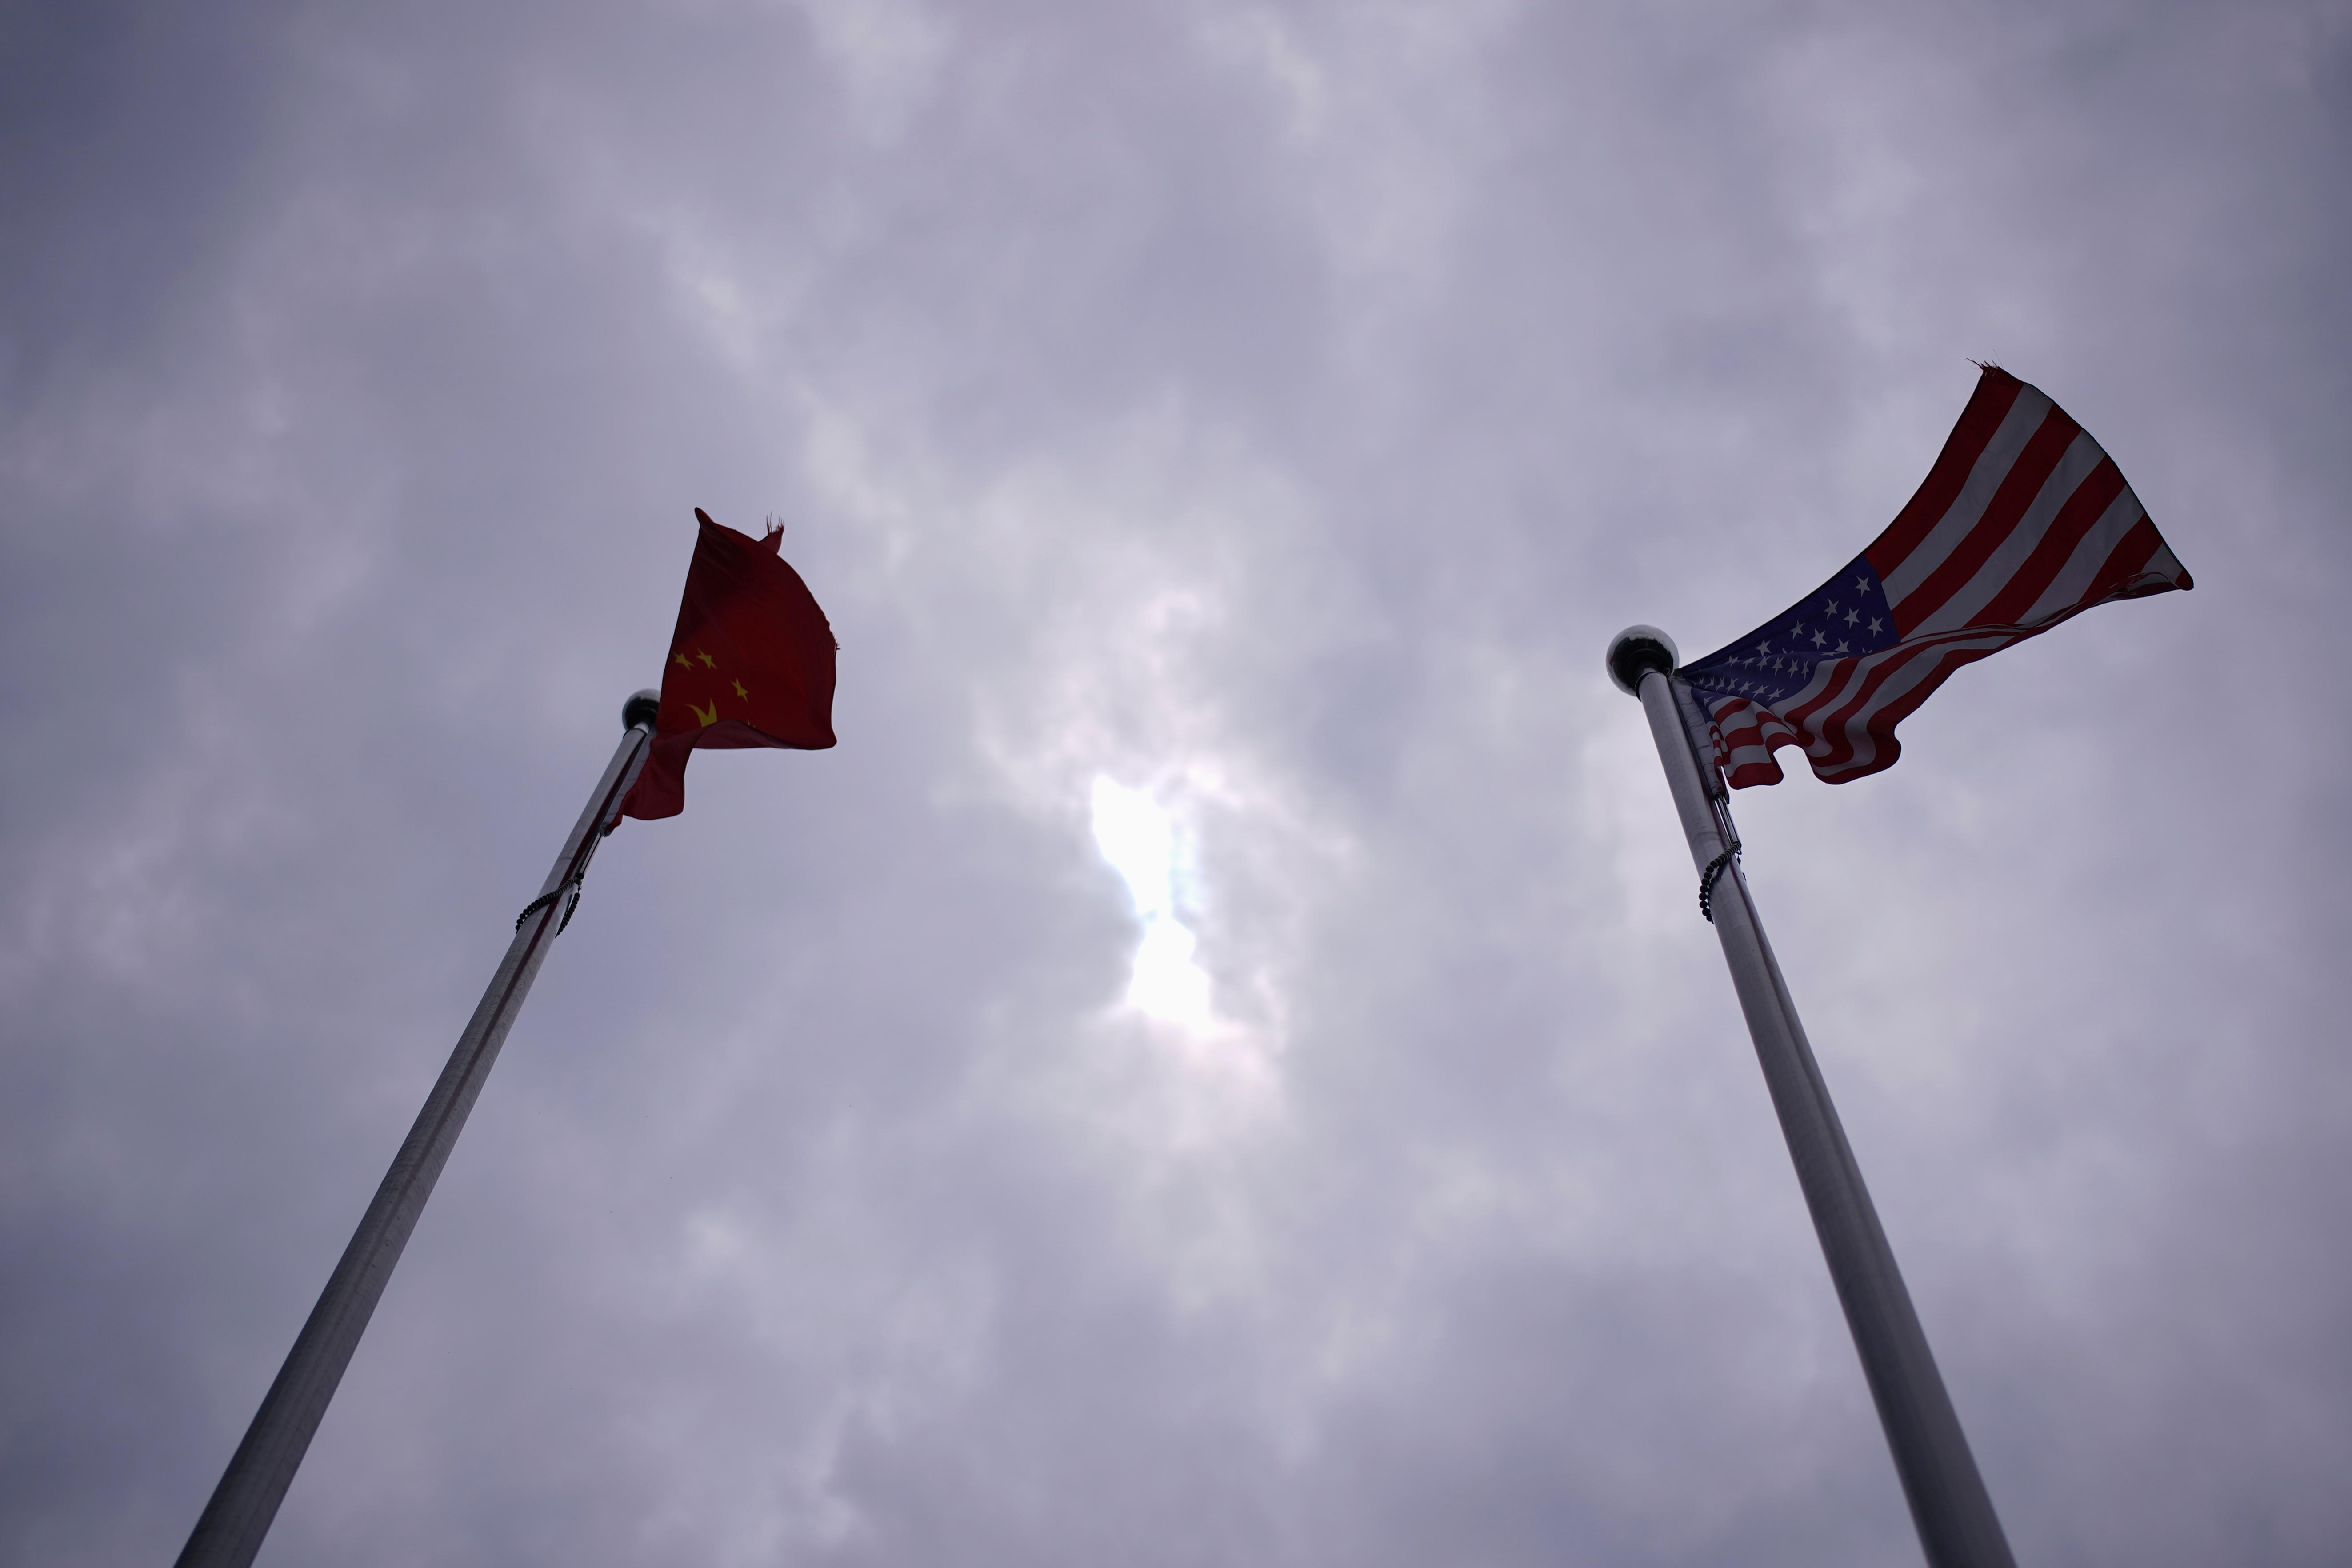 Chinese and U.S. flags flutter in Shanghai, China June 3, 2020. Aly Song